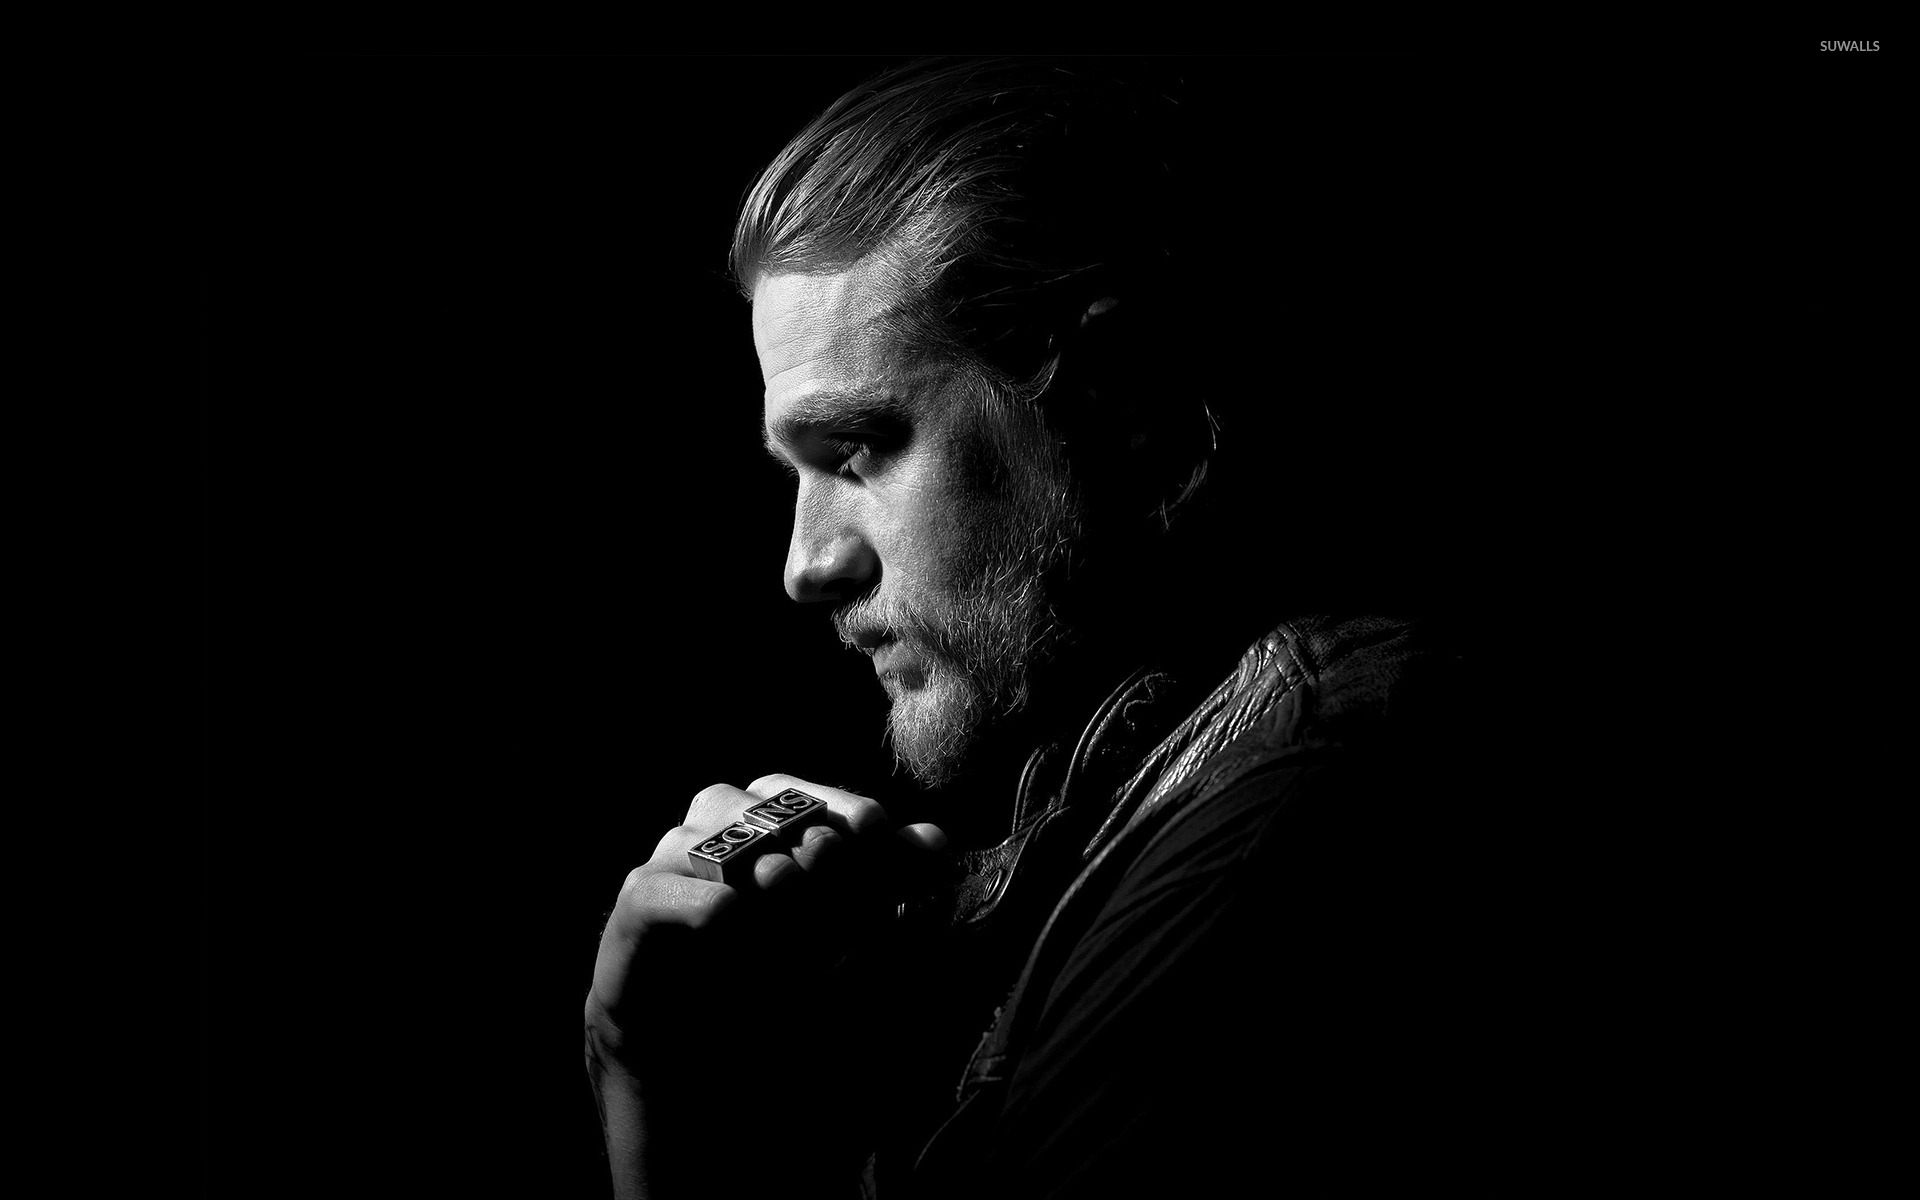 Jax Teller Sons Of Anarchy Wallpaper Tv Show Wallpapers 31410